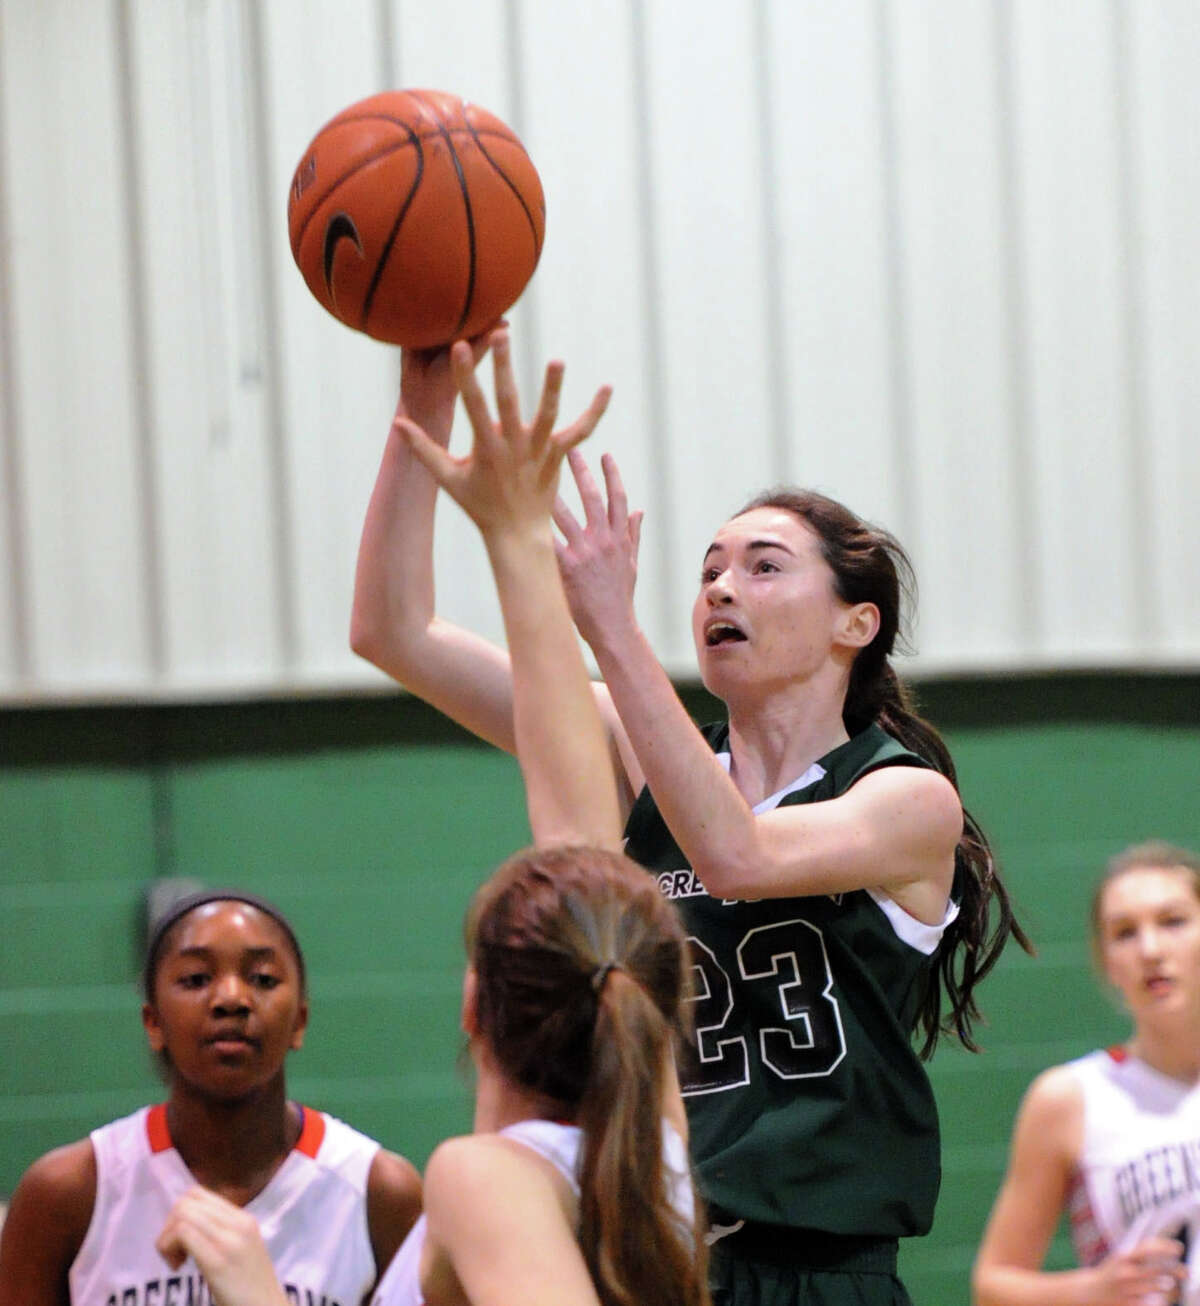 Colleen O'Neill (#23) of Convent of the Sacred Heart drives through a group of Greens Farms Academy defenders to score during the FAA girls high school basketball quarterfinals between Convent of the Sacred Heart and Greens Farms Academy at Convent in Greenwich, Thursday, Feb. 20, 2014.